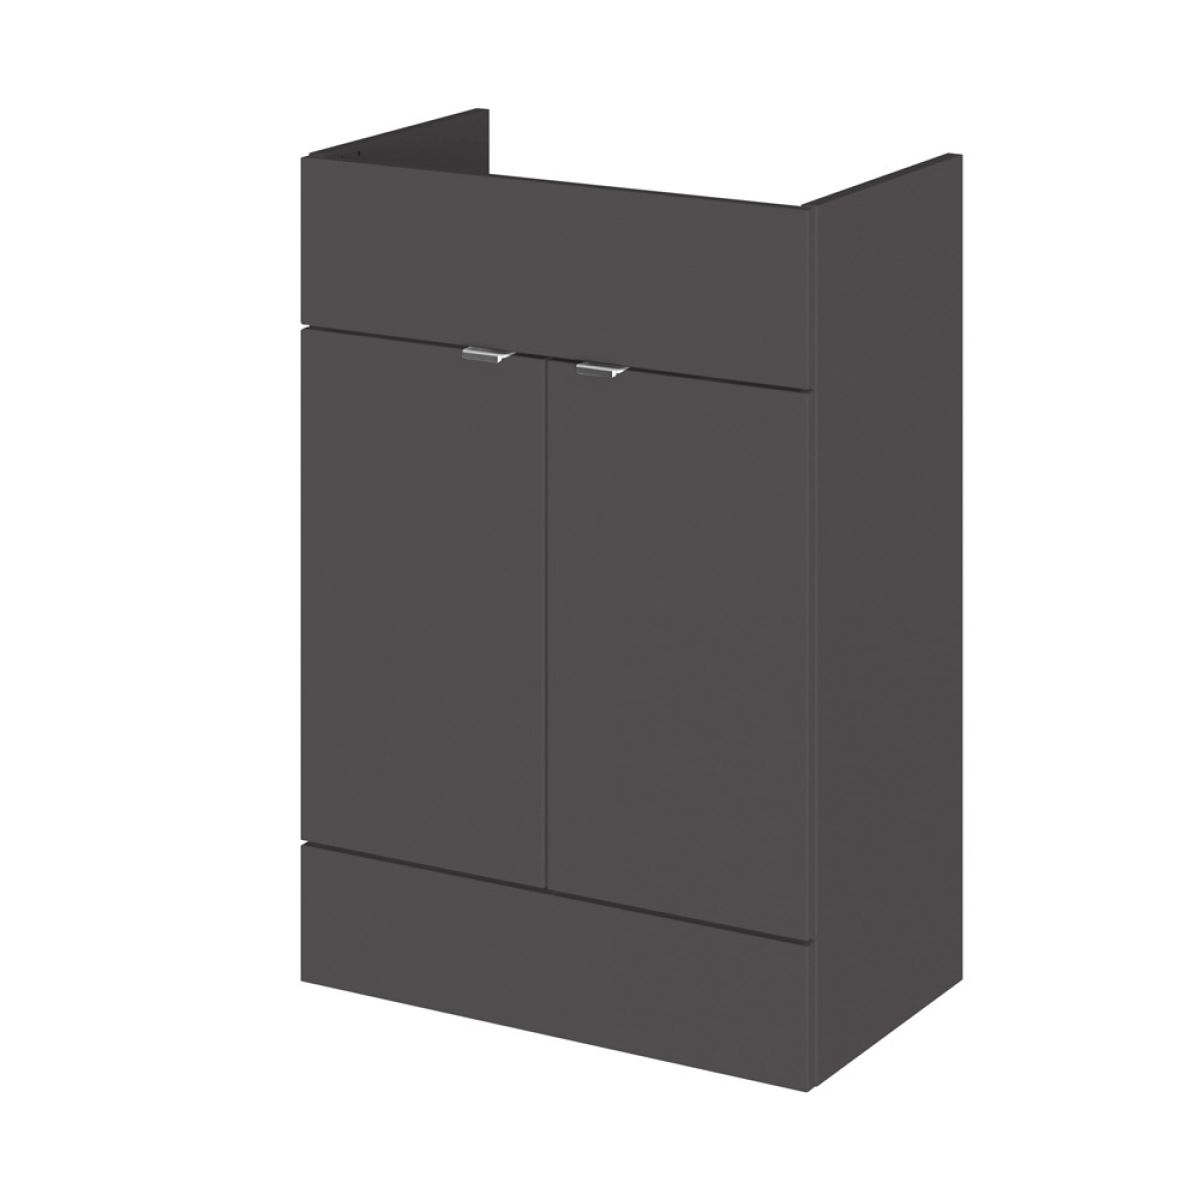 Hudson Reed Fusion Gloss Grey Full Depth Storage Furniture Pack 1500mm